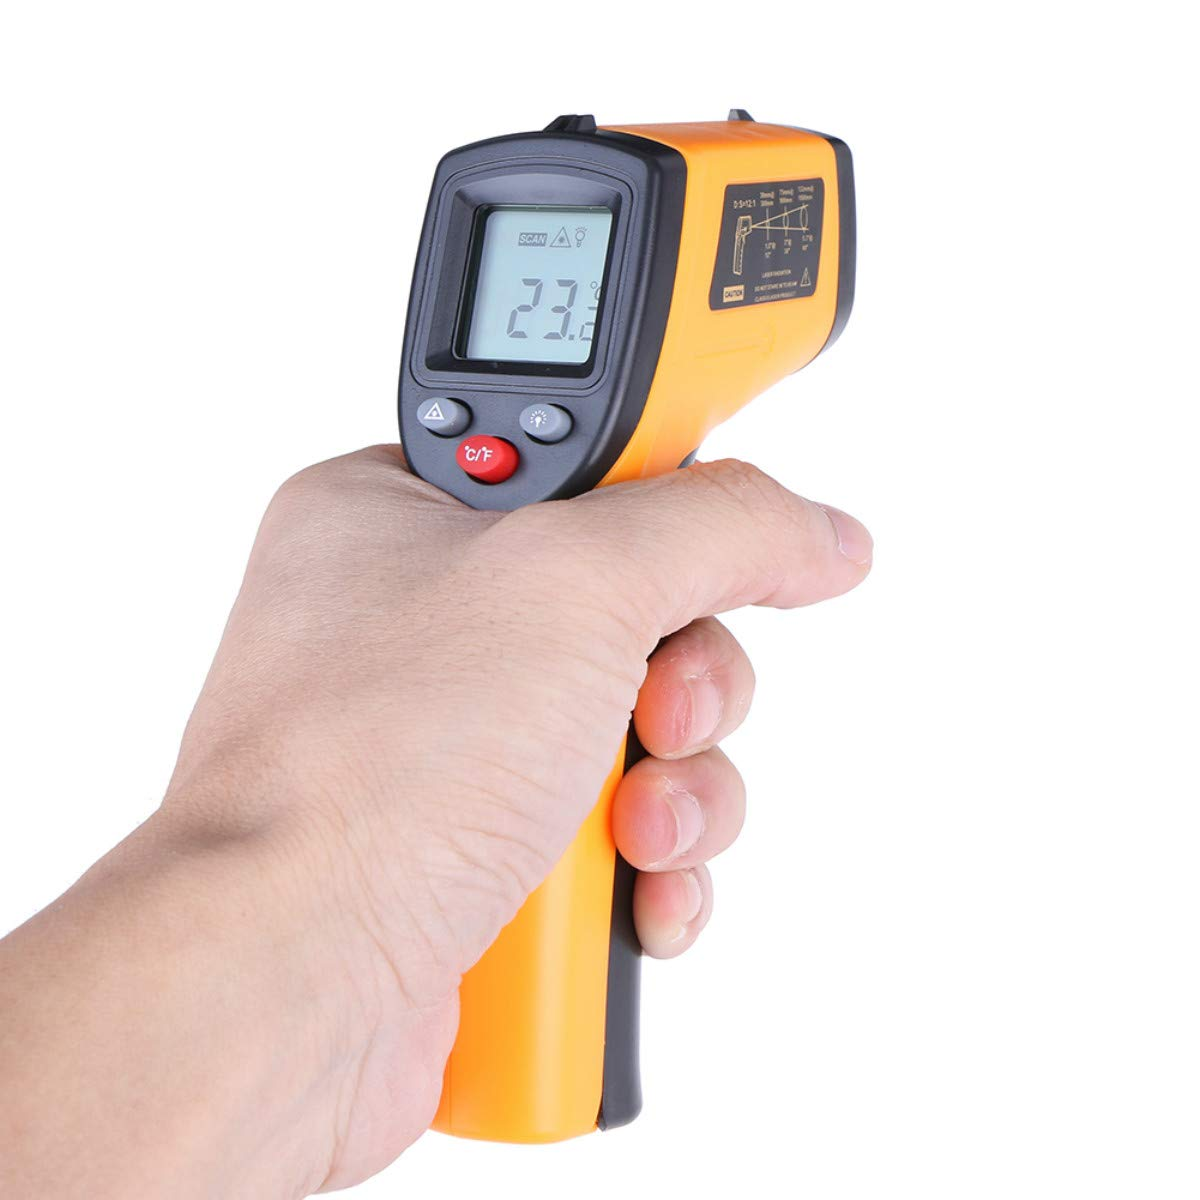 PCEPEIVK Non-Contact Digital LCD Infrared Thermometer Gun IR Laser Point Thermal Infrared Imaging Temperature Handheld Meter Pyrometer